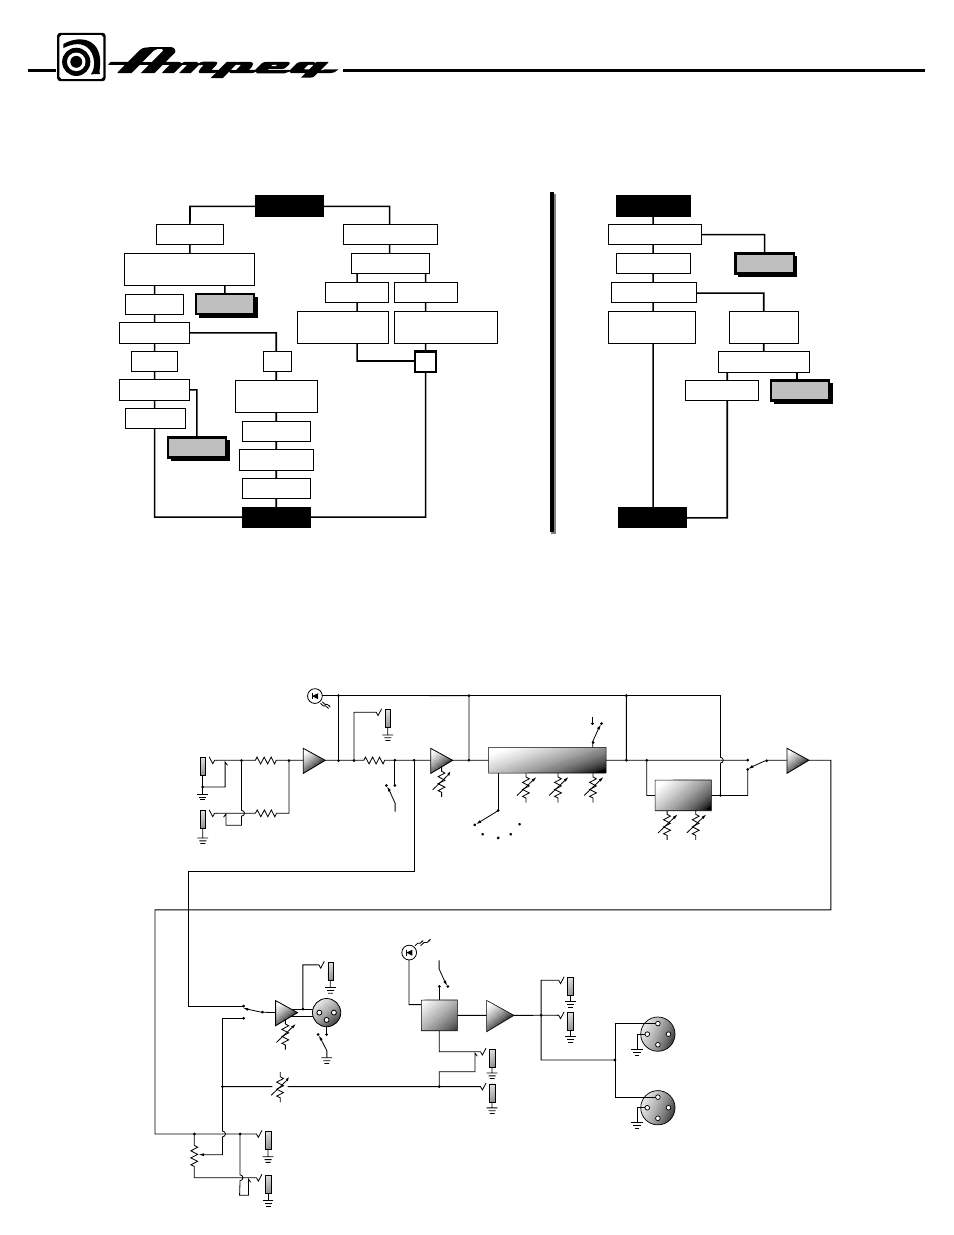 Troubleshooting System Block Diagram Svt1000 Bass Amplifier Fuse Box Speakers Ampeg User Manual Page 7 8